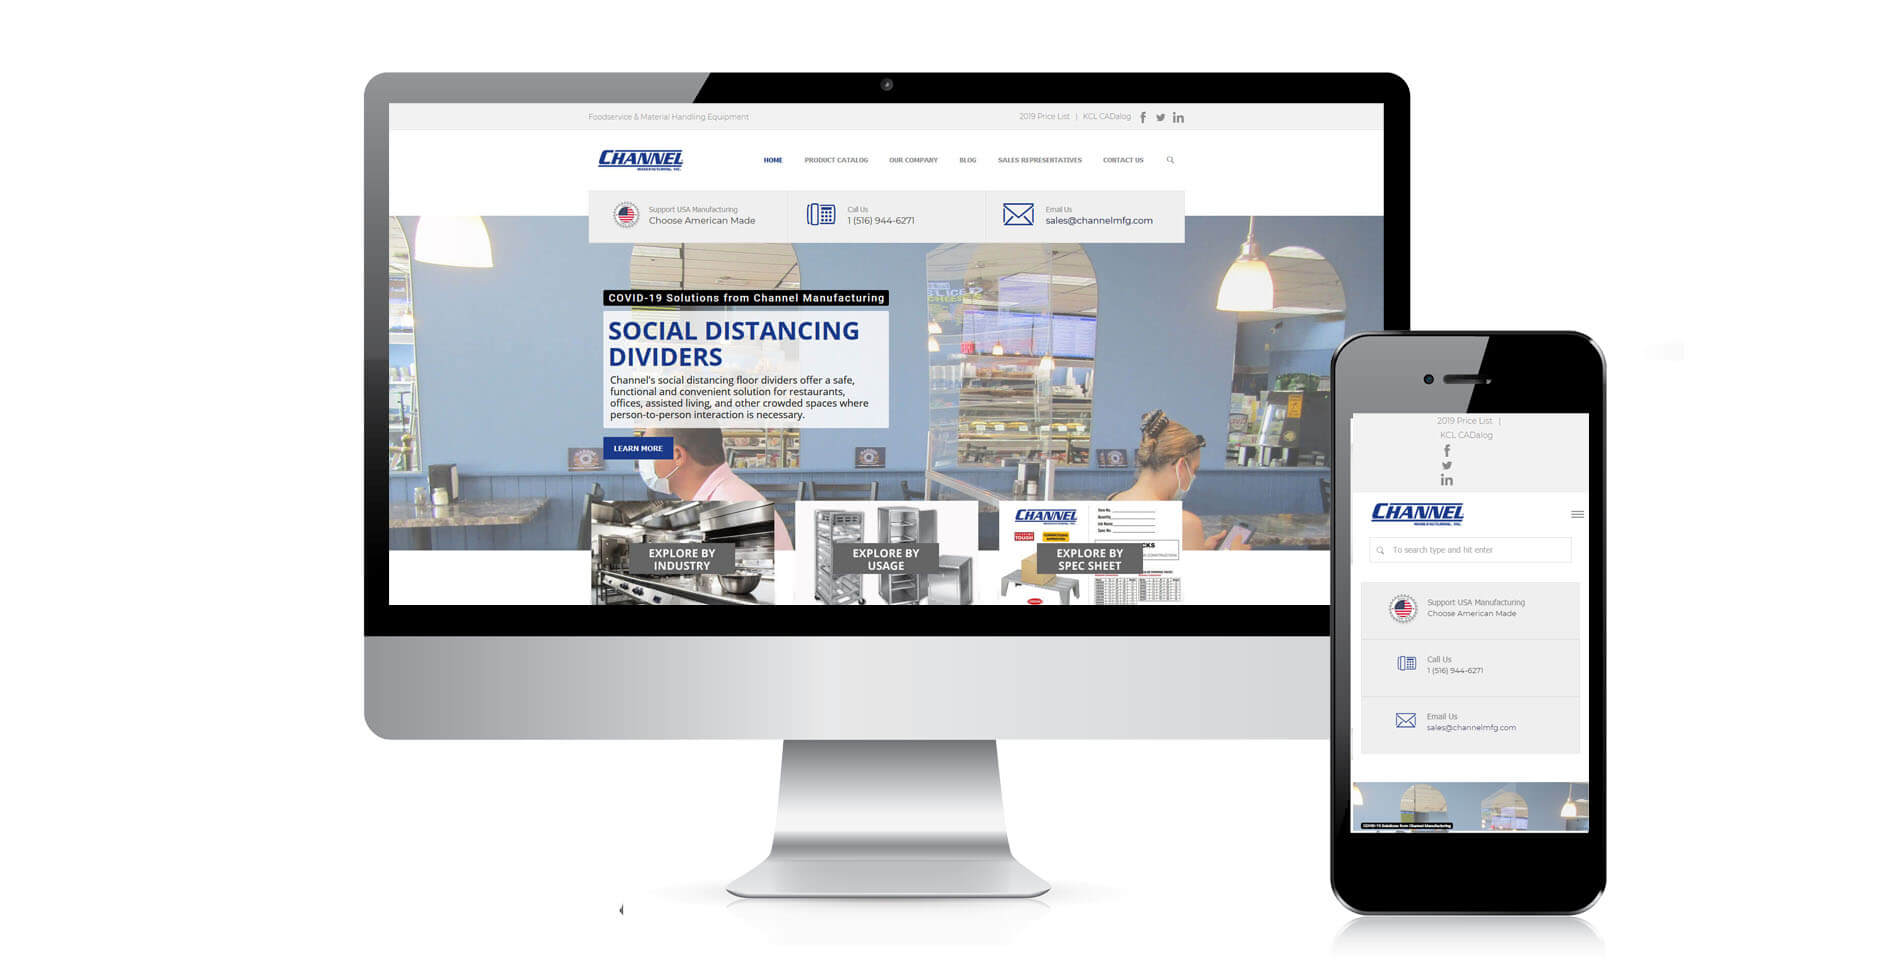 An image of the responsive design of ChannelMFG.com, website created by Not Fade Away Marketing